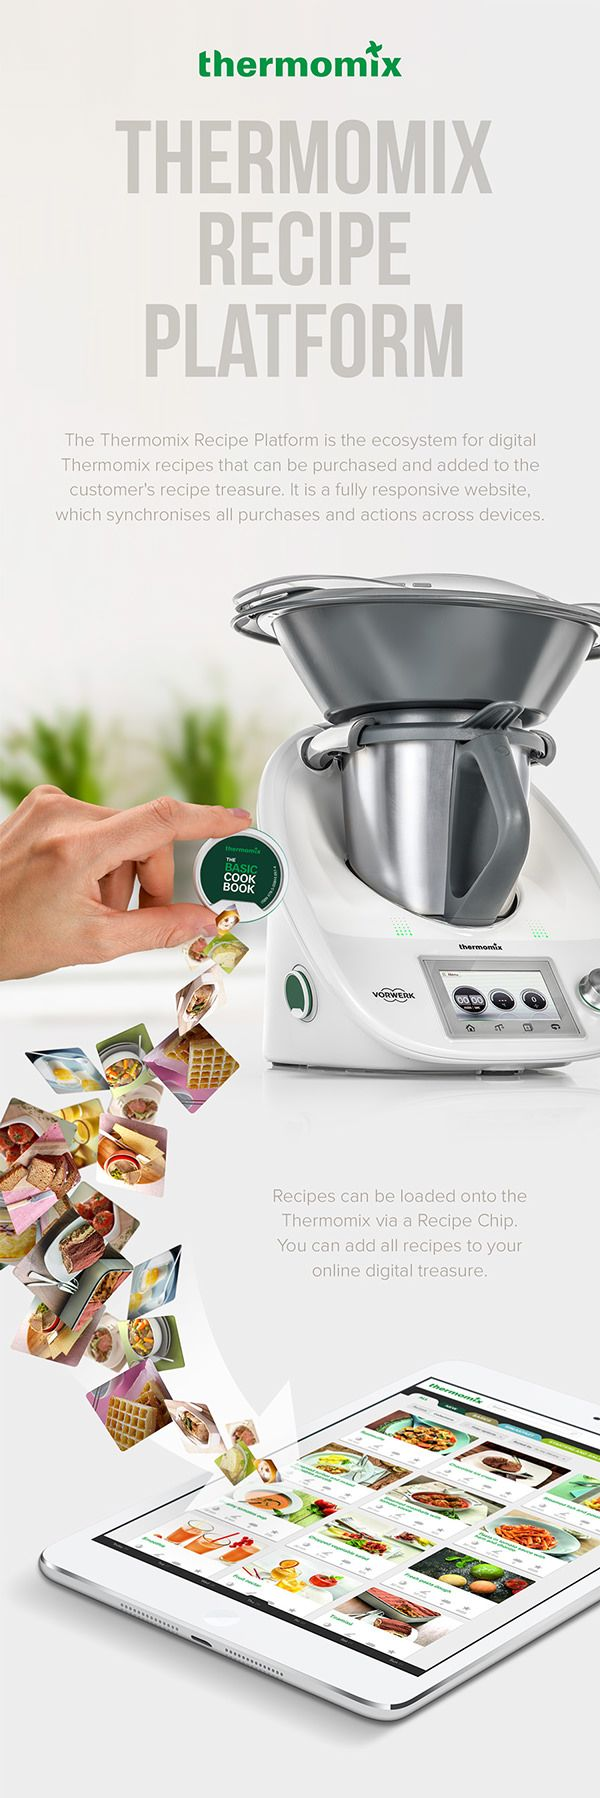 Thermomix Recipe Platform: Responsive Website on Behance